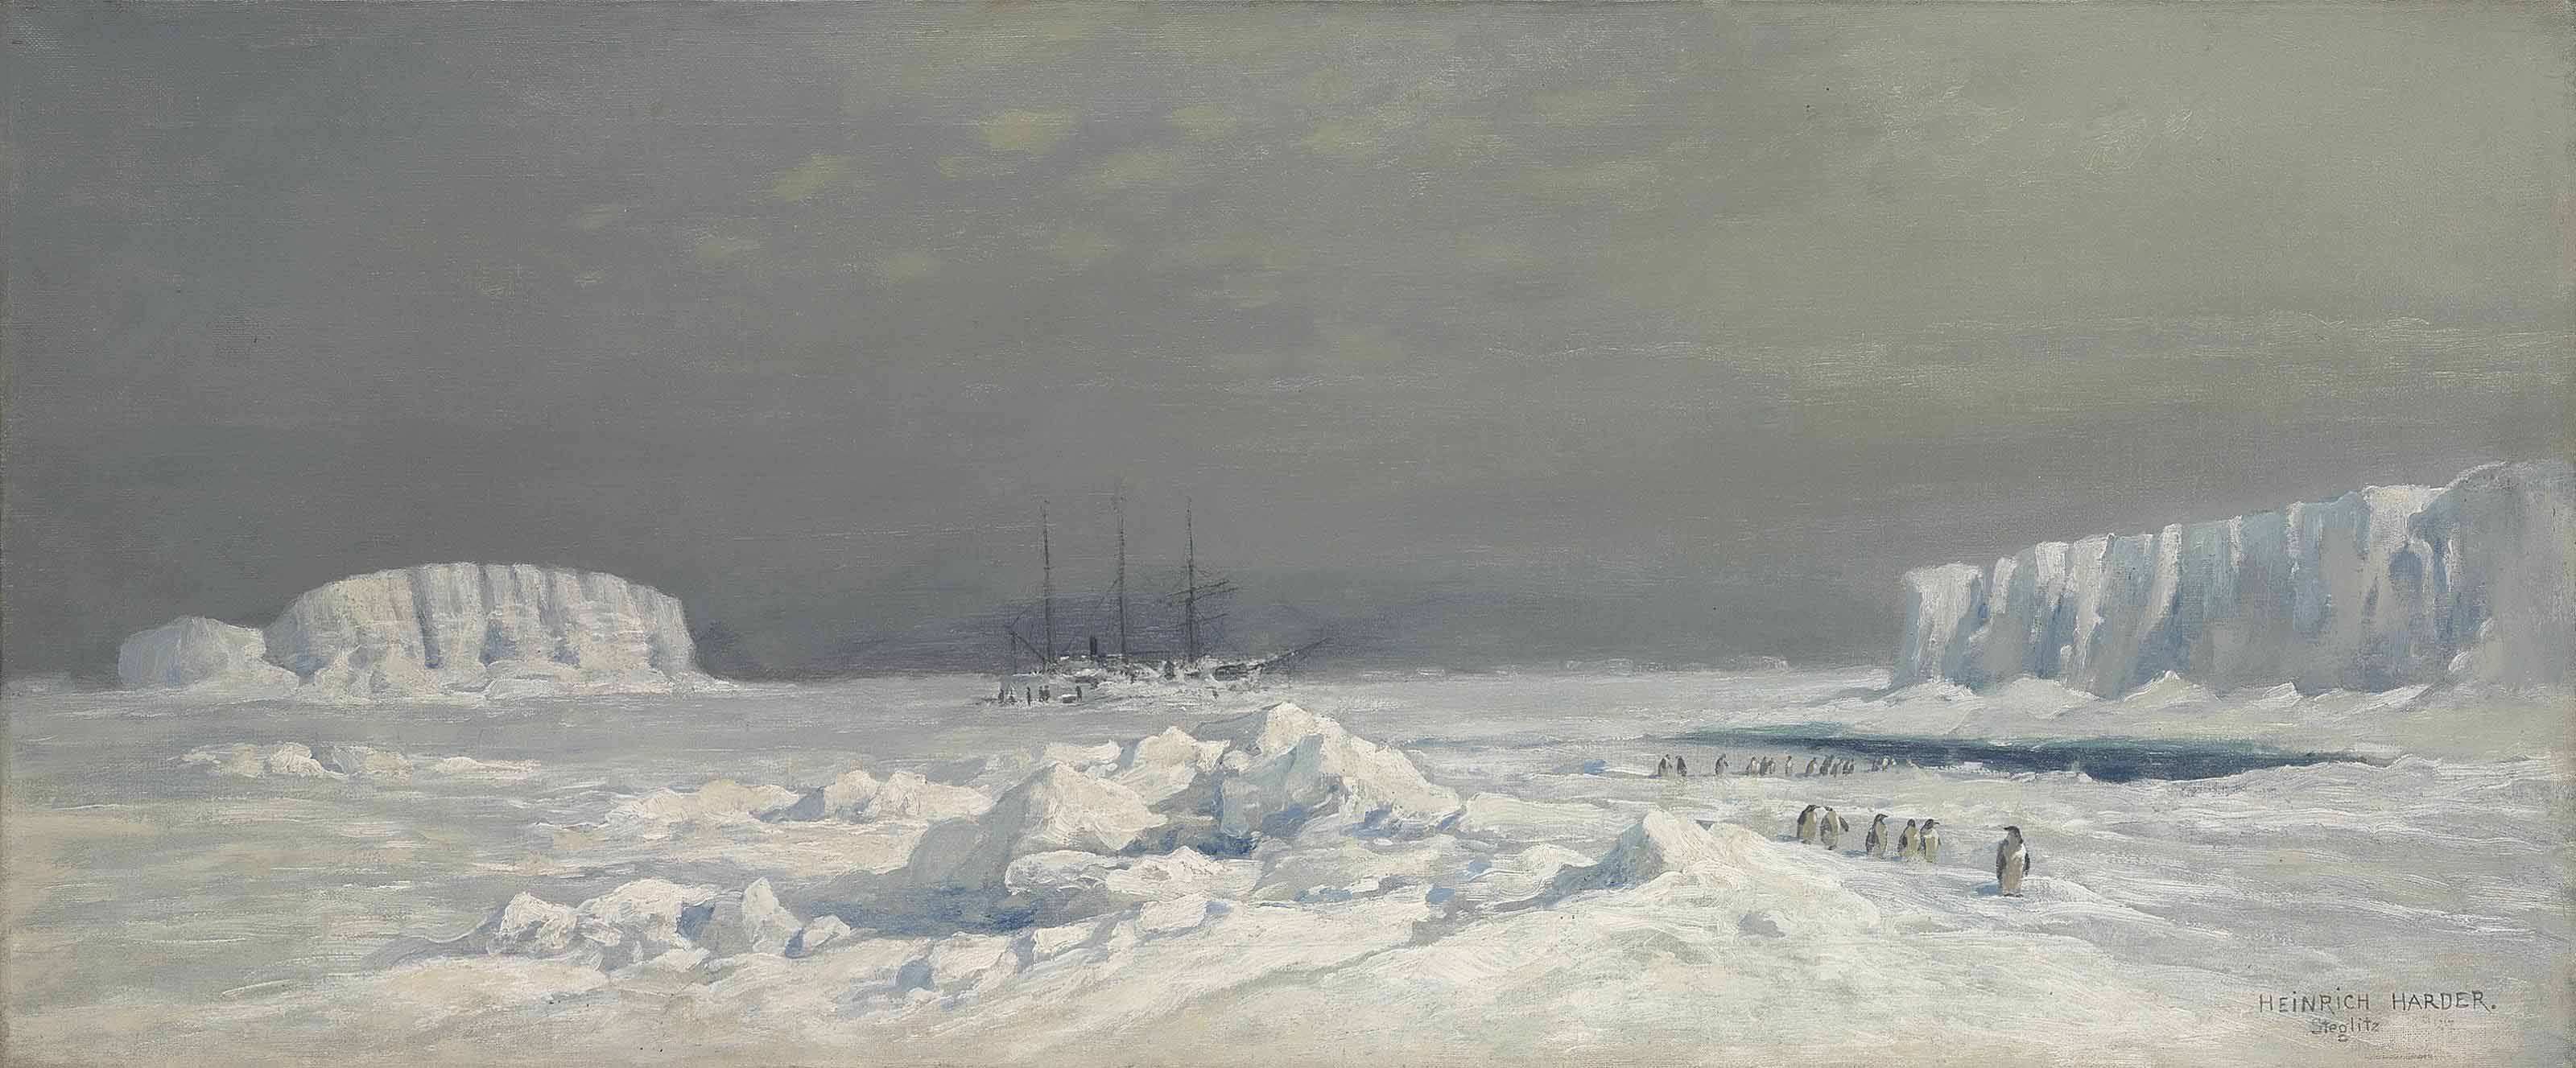 A ship, probably the Gauss, trapped in pack-ice in the Antarctic